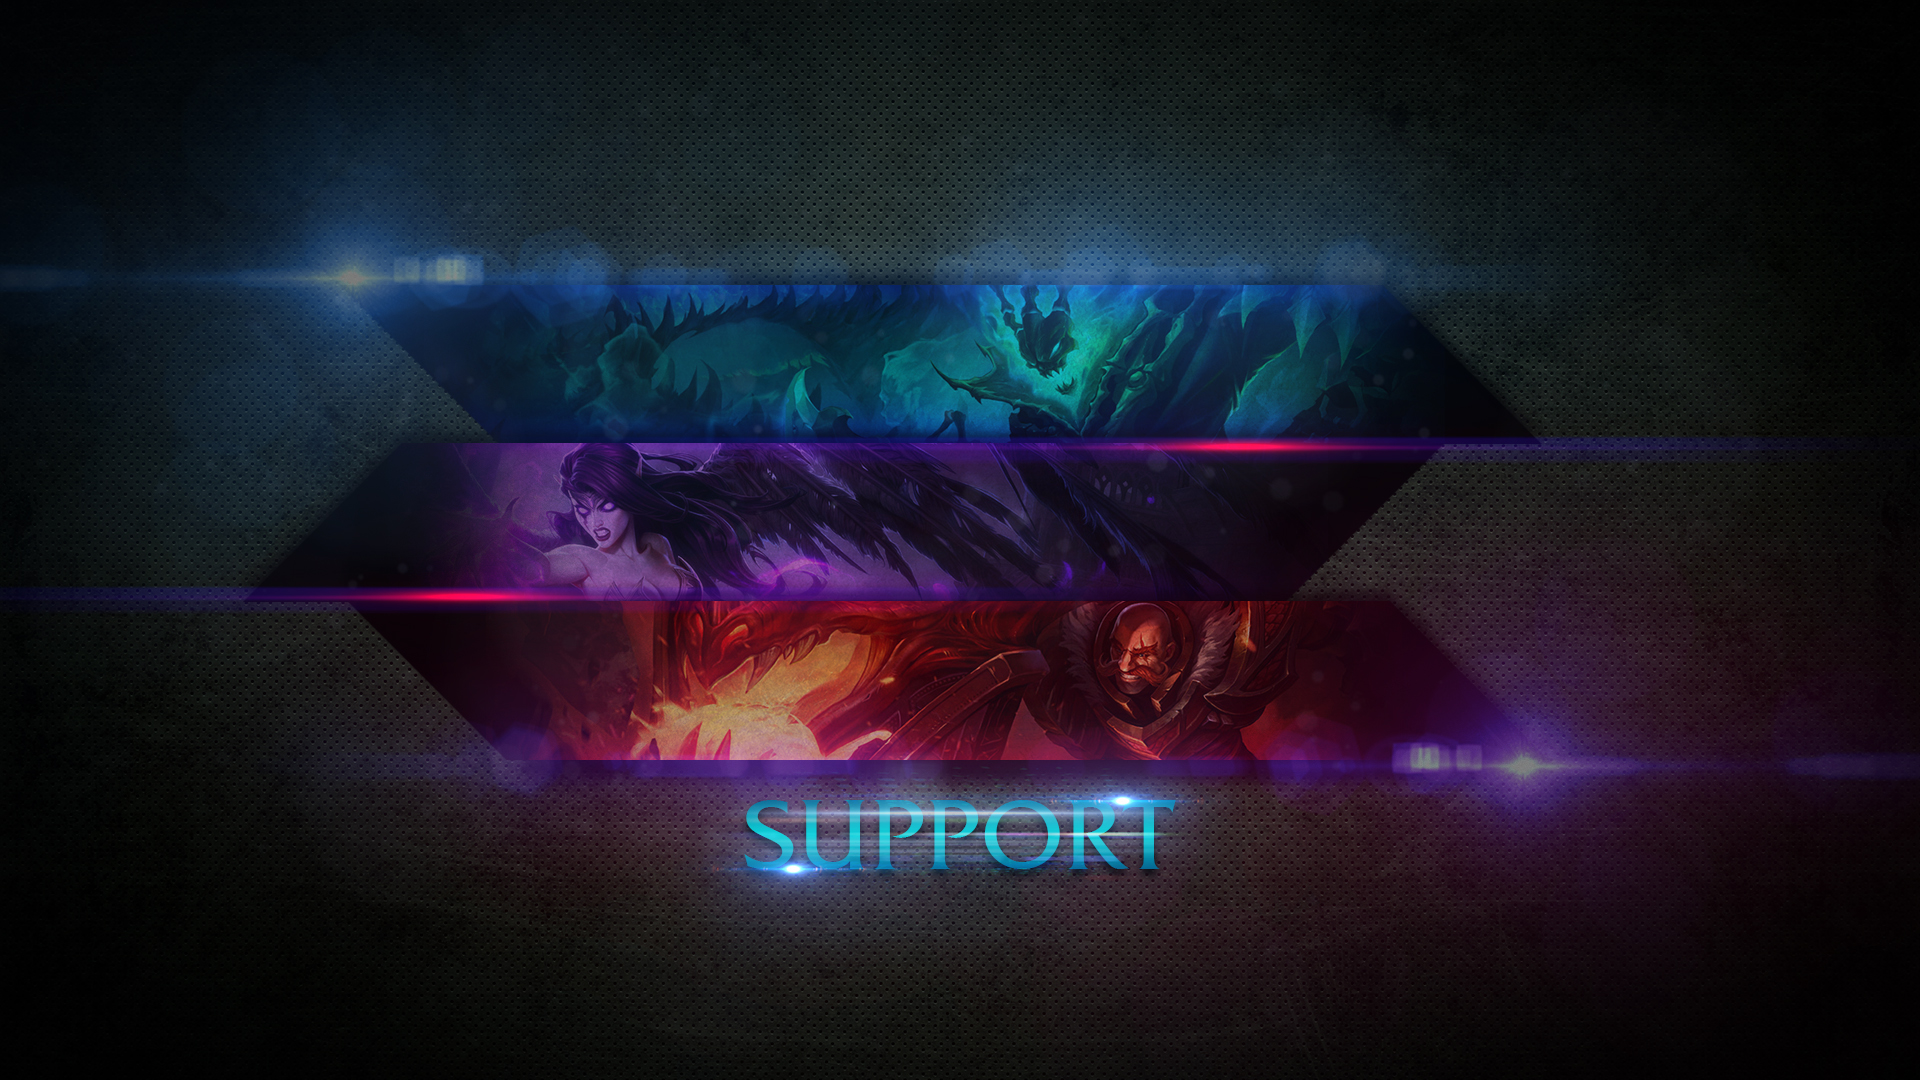 Free Download League Of Legends Support Wallpaper By